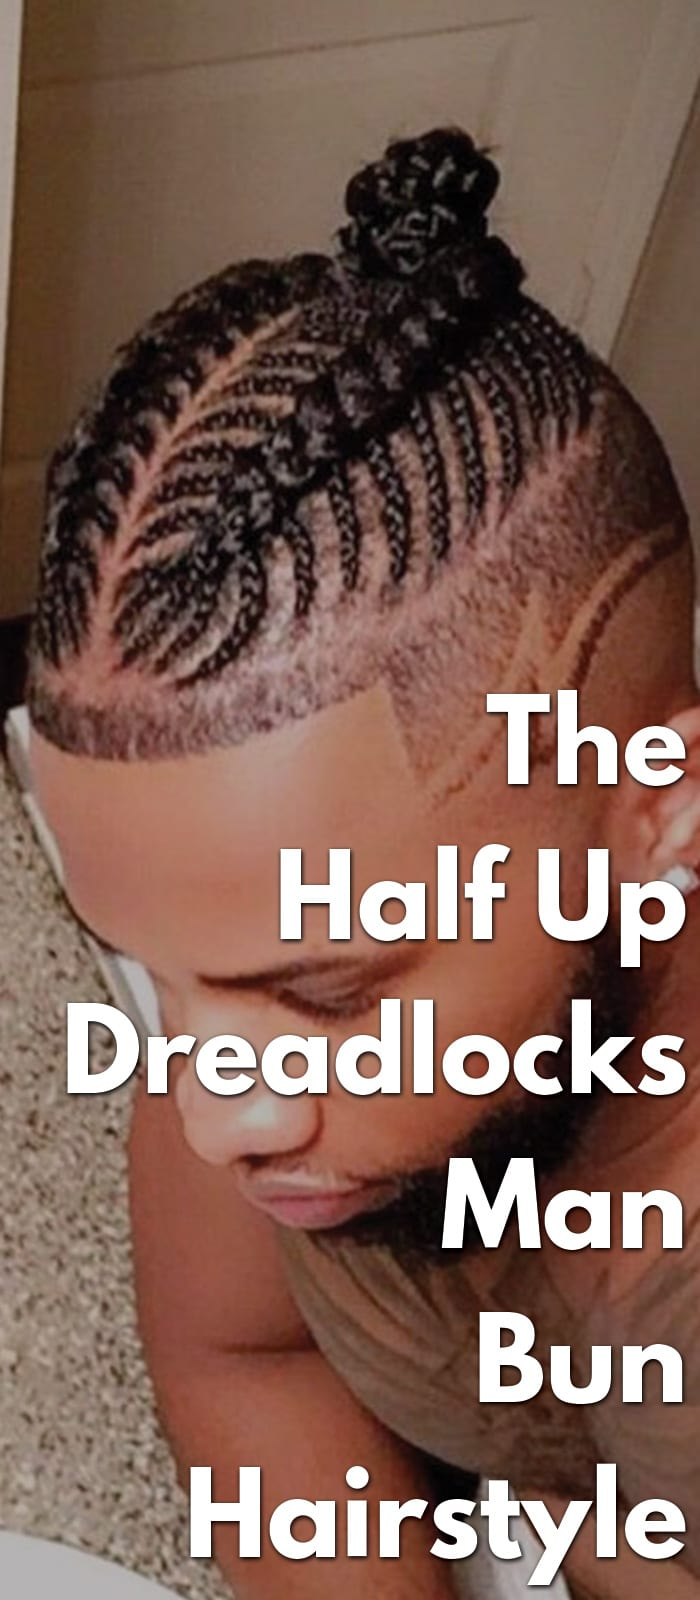 The Half Up Dreadlocks Man Bun Hairstyle